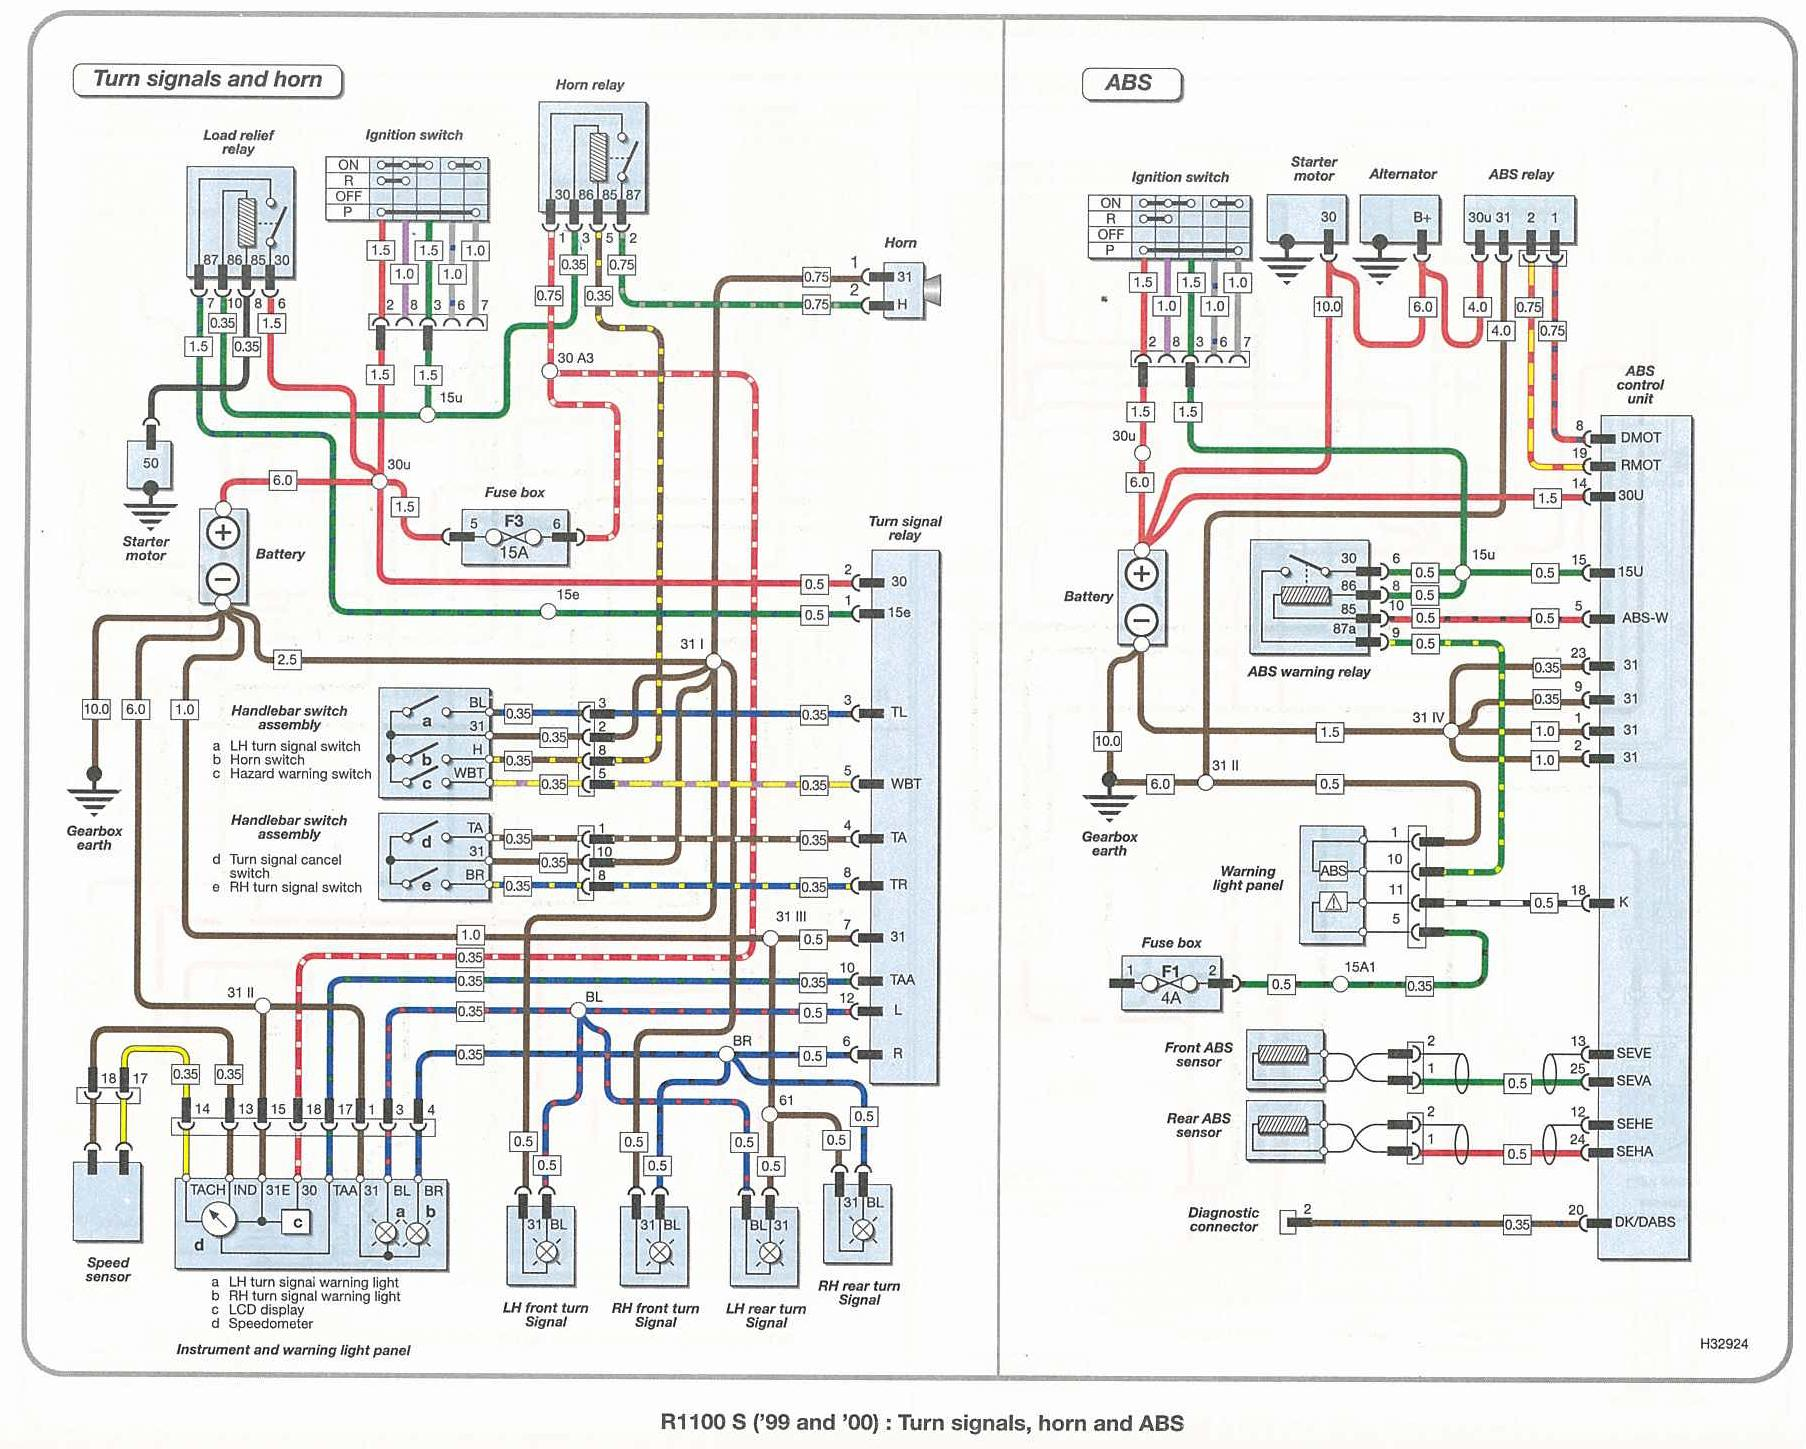 wiring03 bmw wiring diagram bmw wiring diagrams e39 \u2022 wiring diagrams j bmw x5 wiring diagrams online at aneh.co